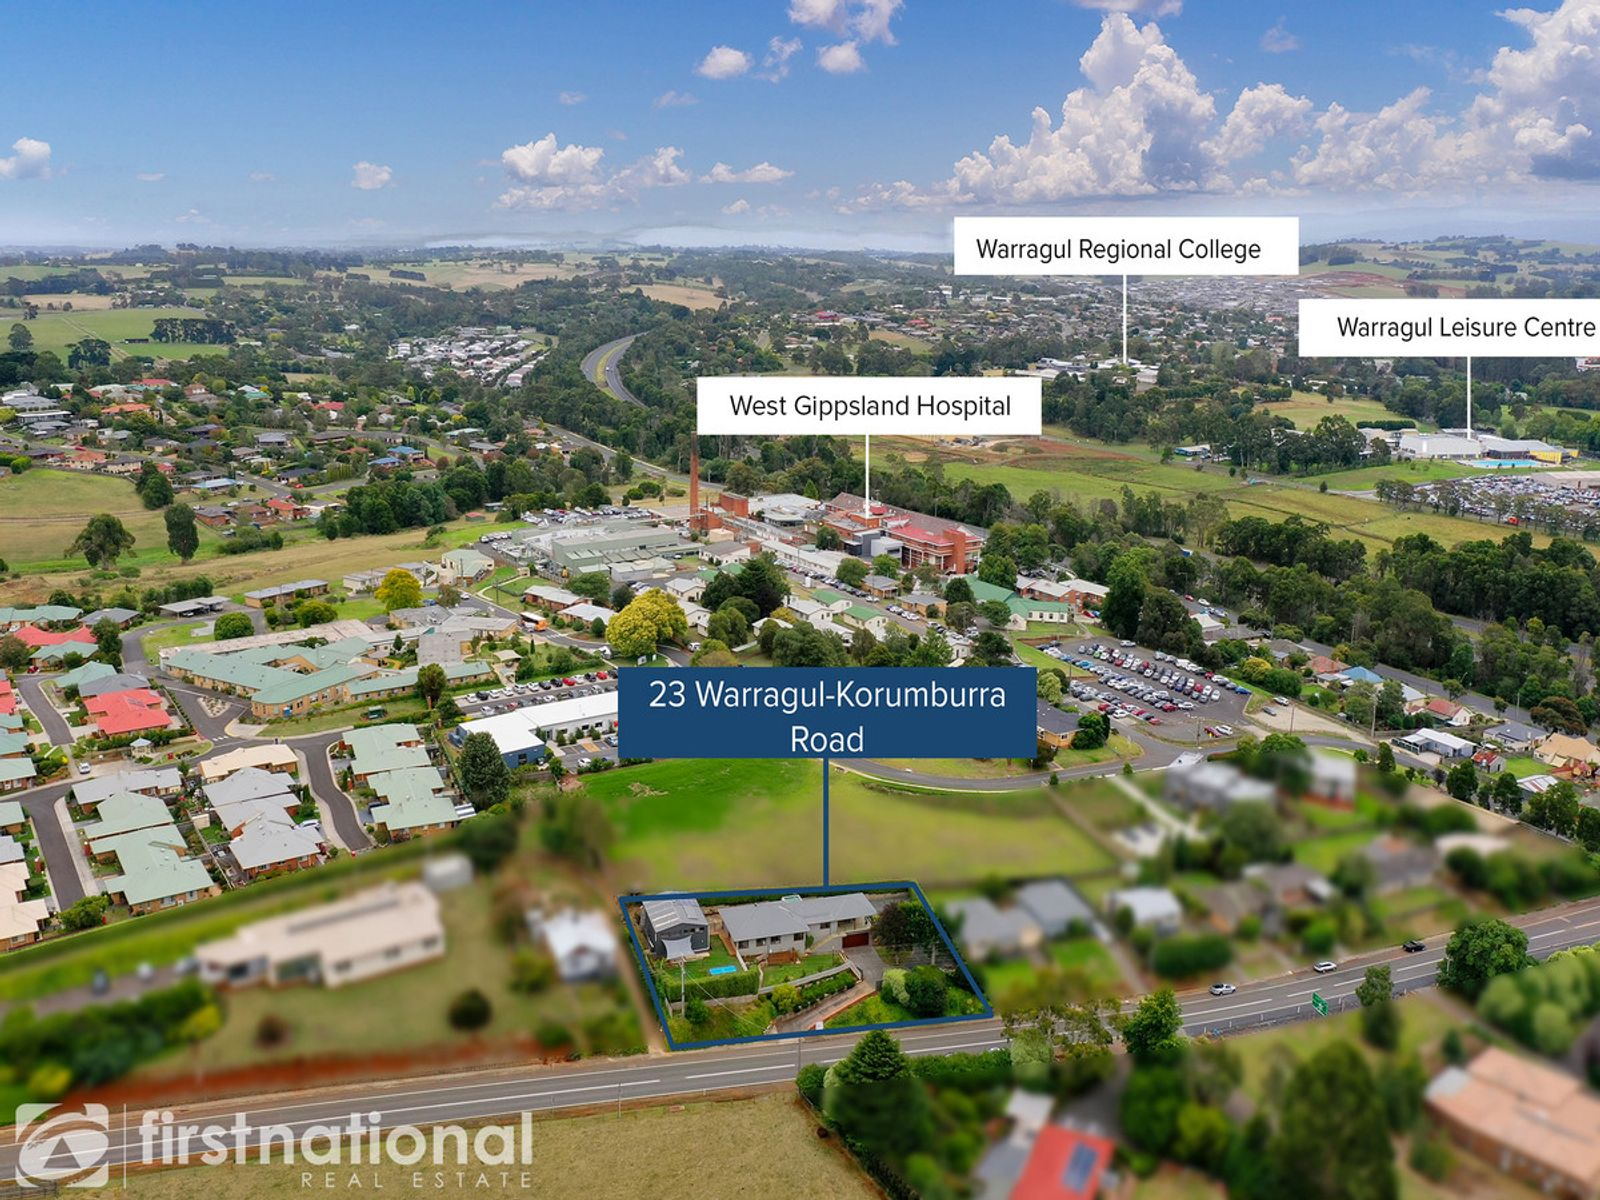 23 Korumburra-Warragul Road, Warragul, VIC 3820